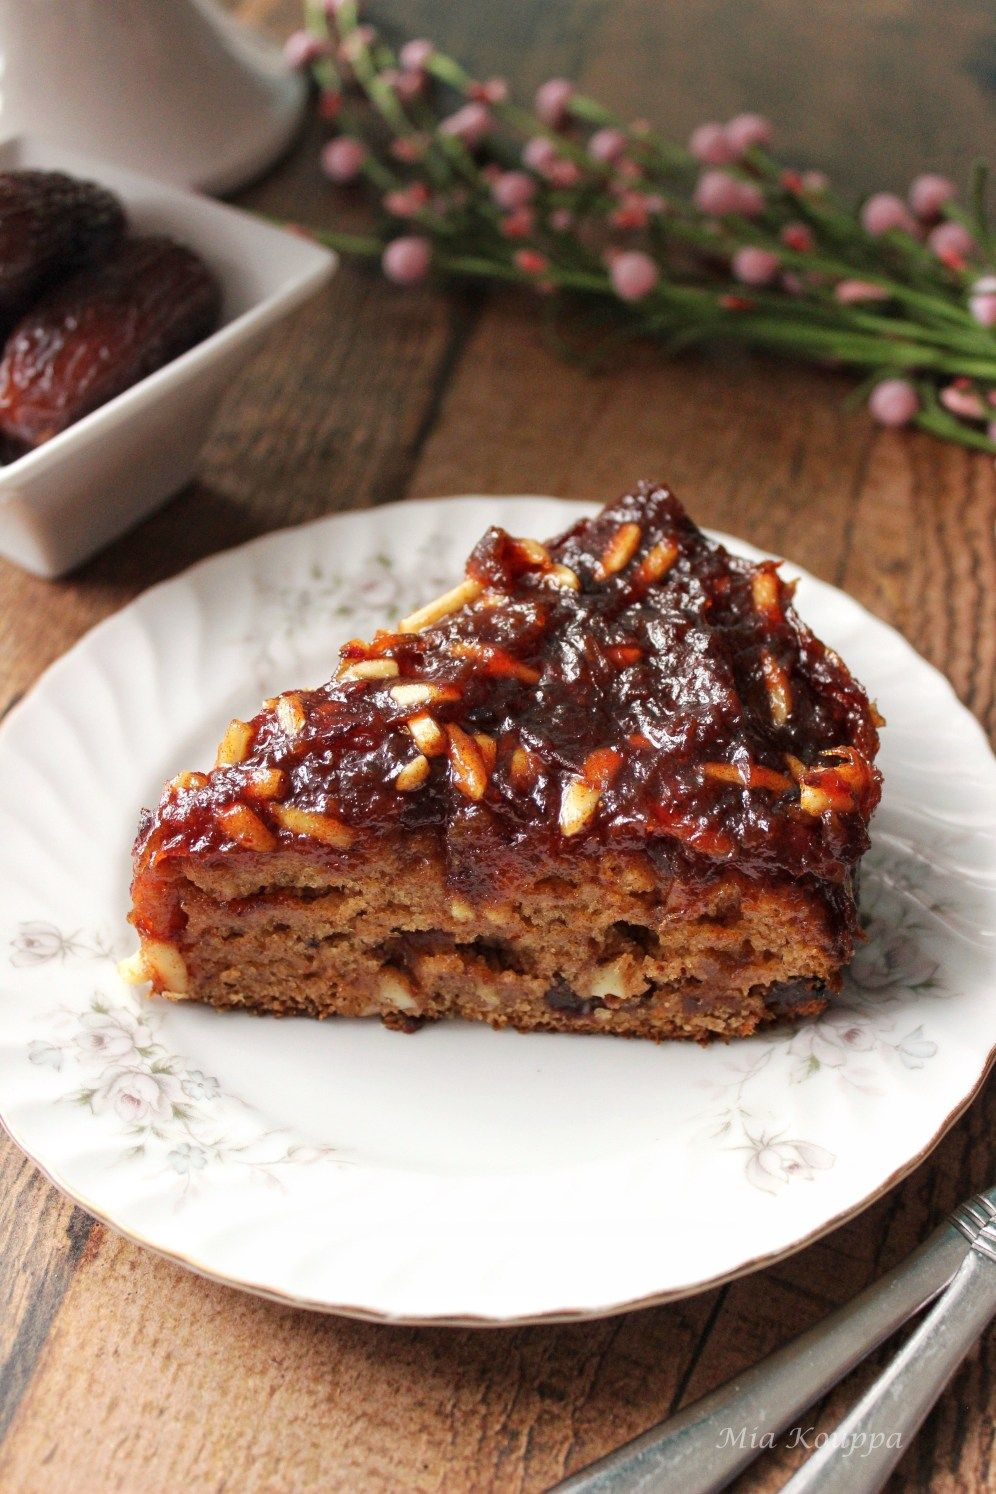 Vegan Date Cake Nhstisimo Glyko Me Xoyrmades Recipe In 2020 Date And Walnut Cake Cake Servings Vegan Cake Recipes